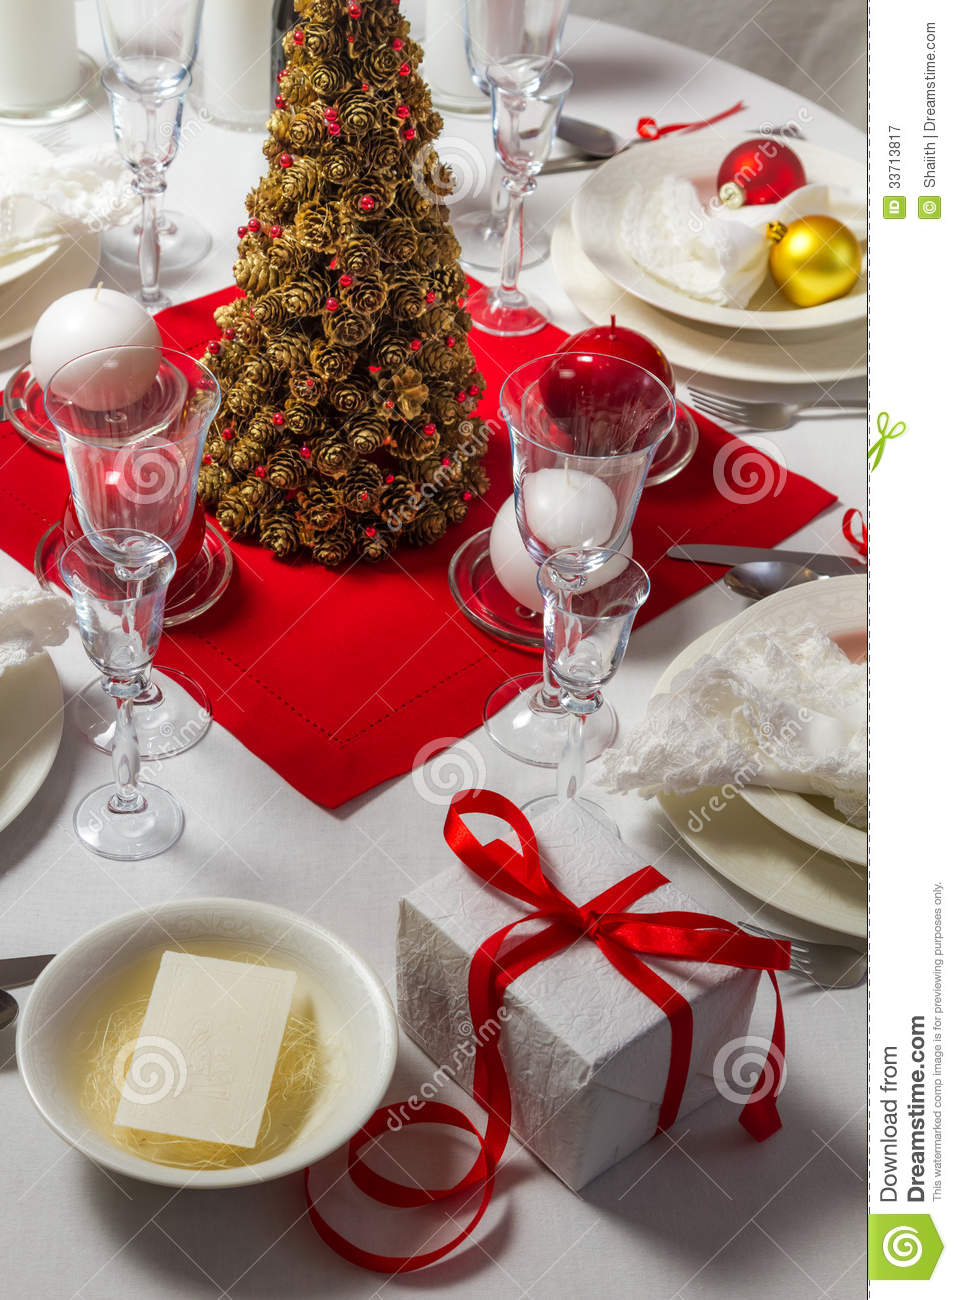 Wafer and gift on christmas table royalty free stock - Table gifts for christmas ...